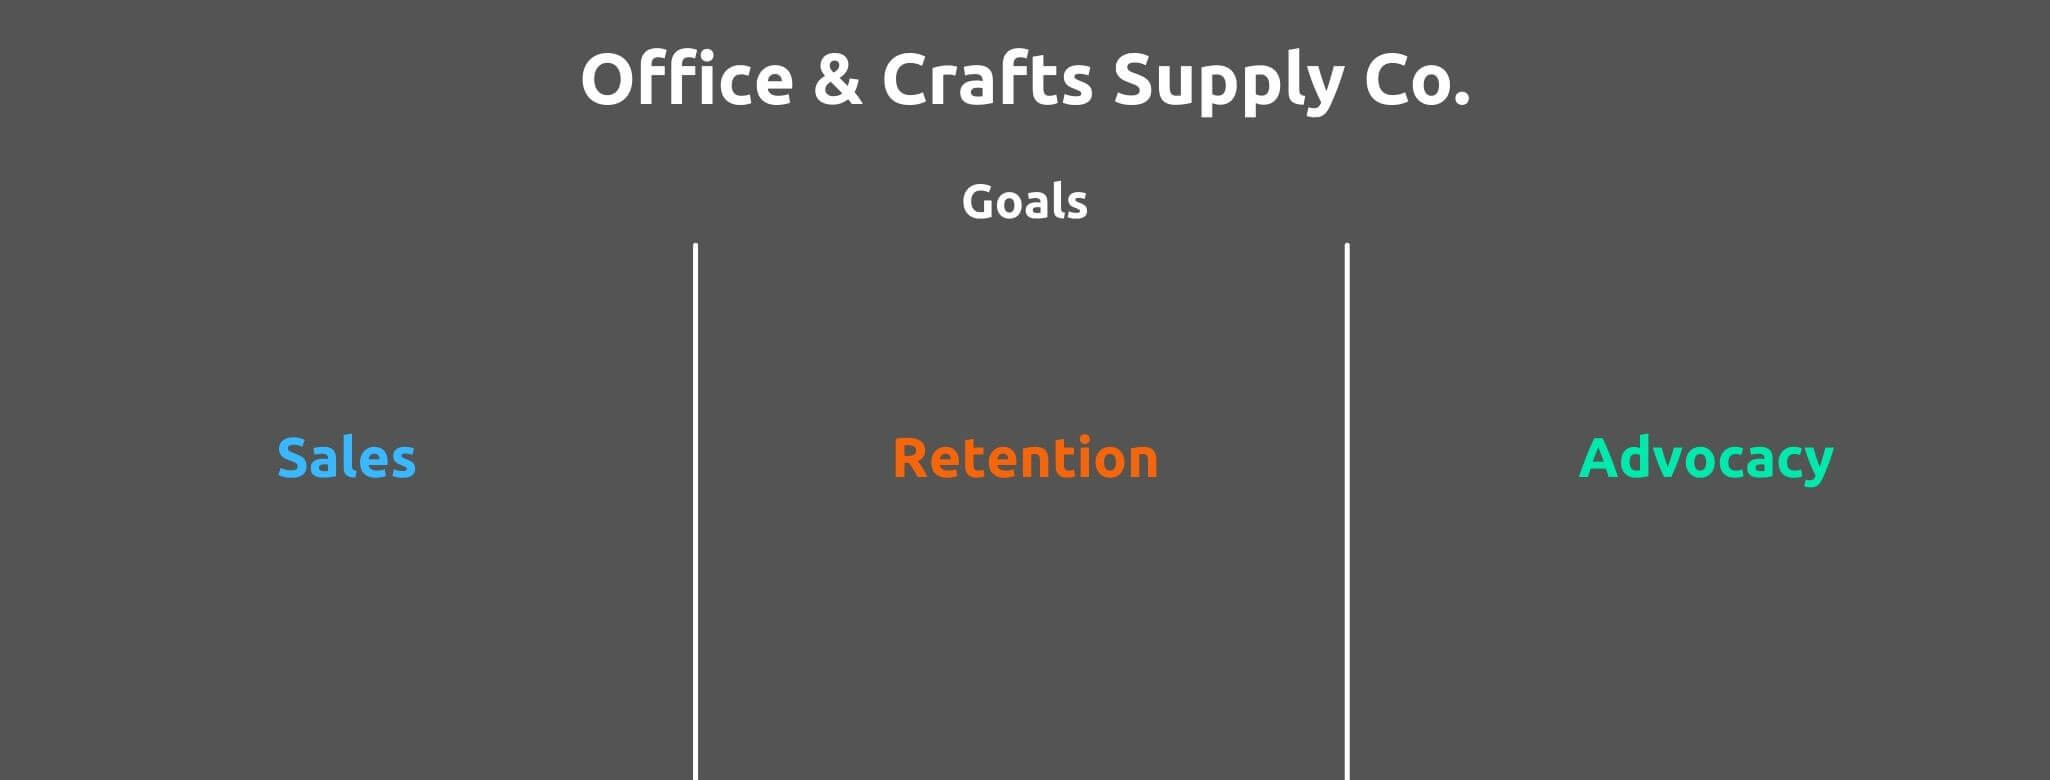 Set Goals - How to Create a Customer Journey Map - Replyco Helpdesk Software for eCommerce